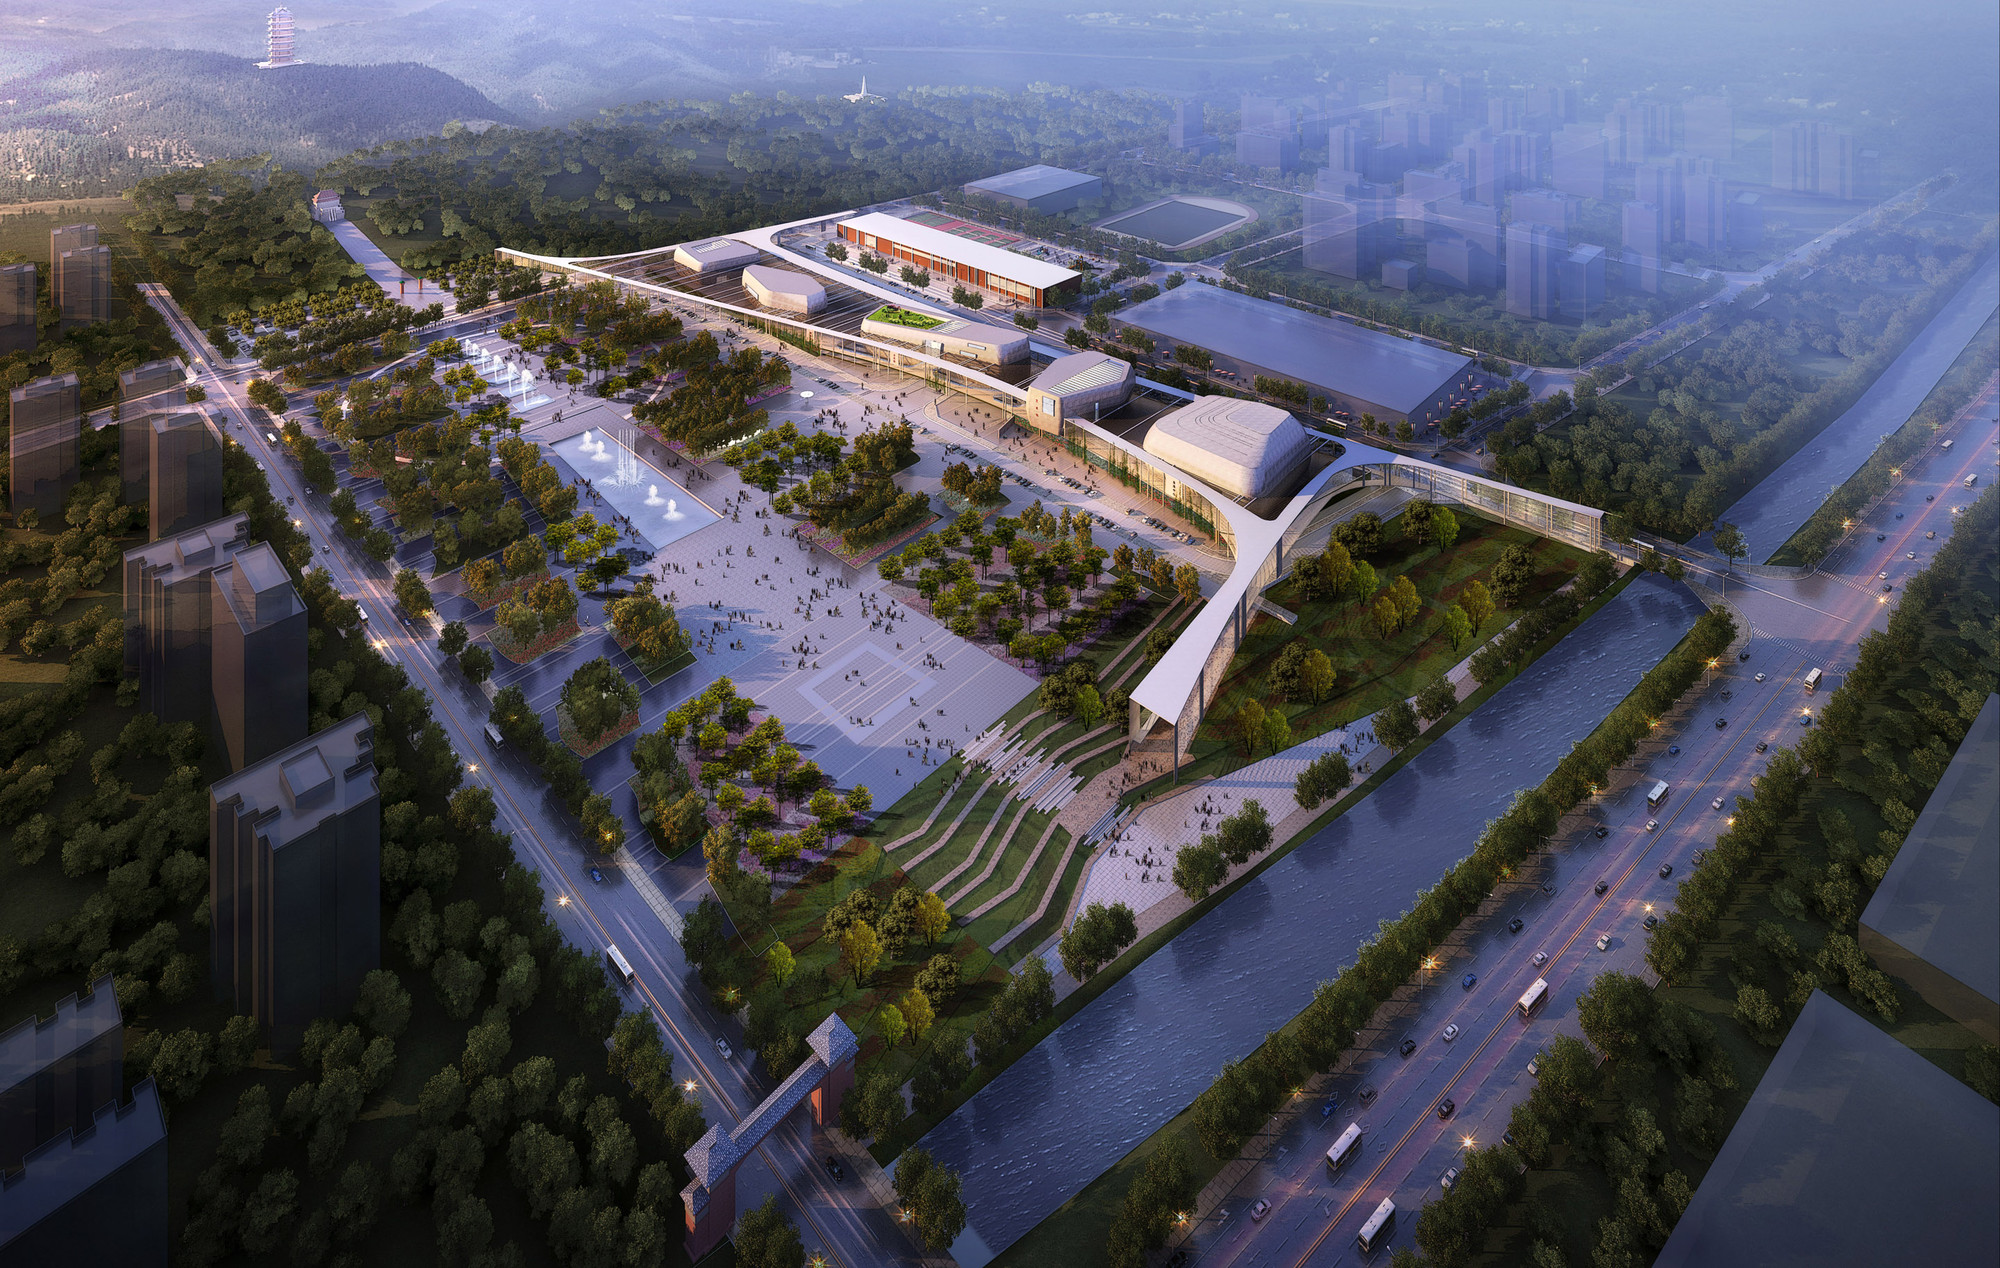 LITTLE Designs Locally-Inspired Cultural Campus for Anqiu, © LITTLE